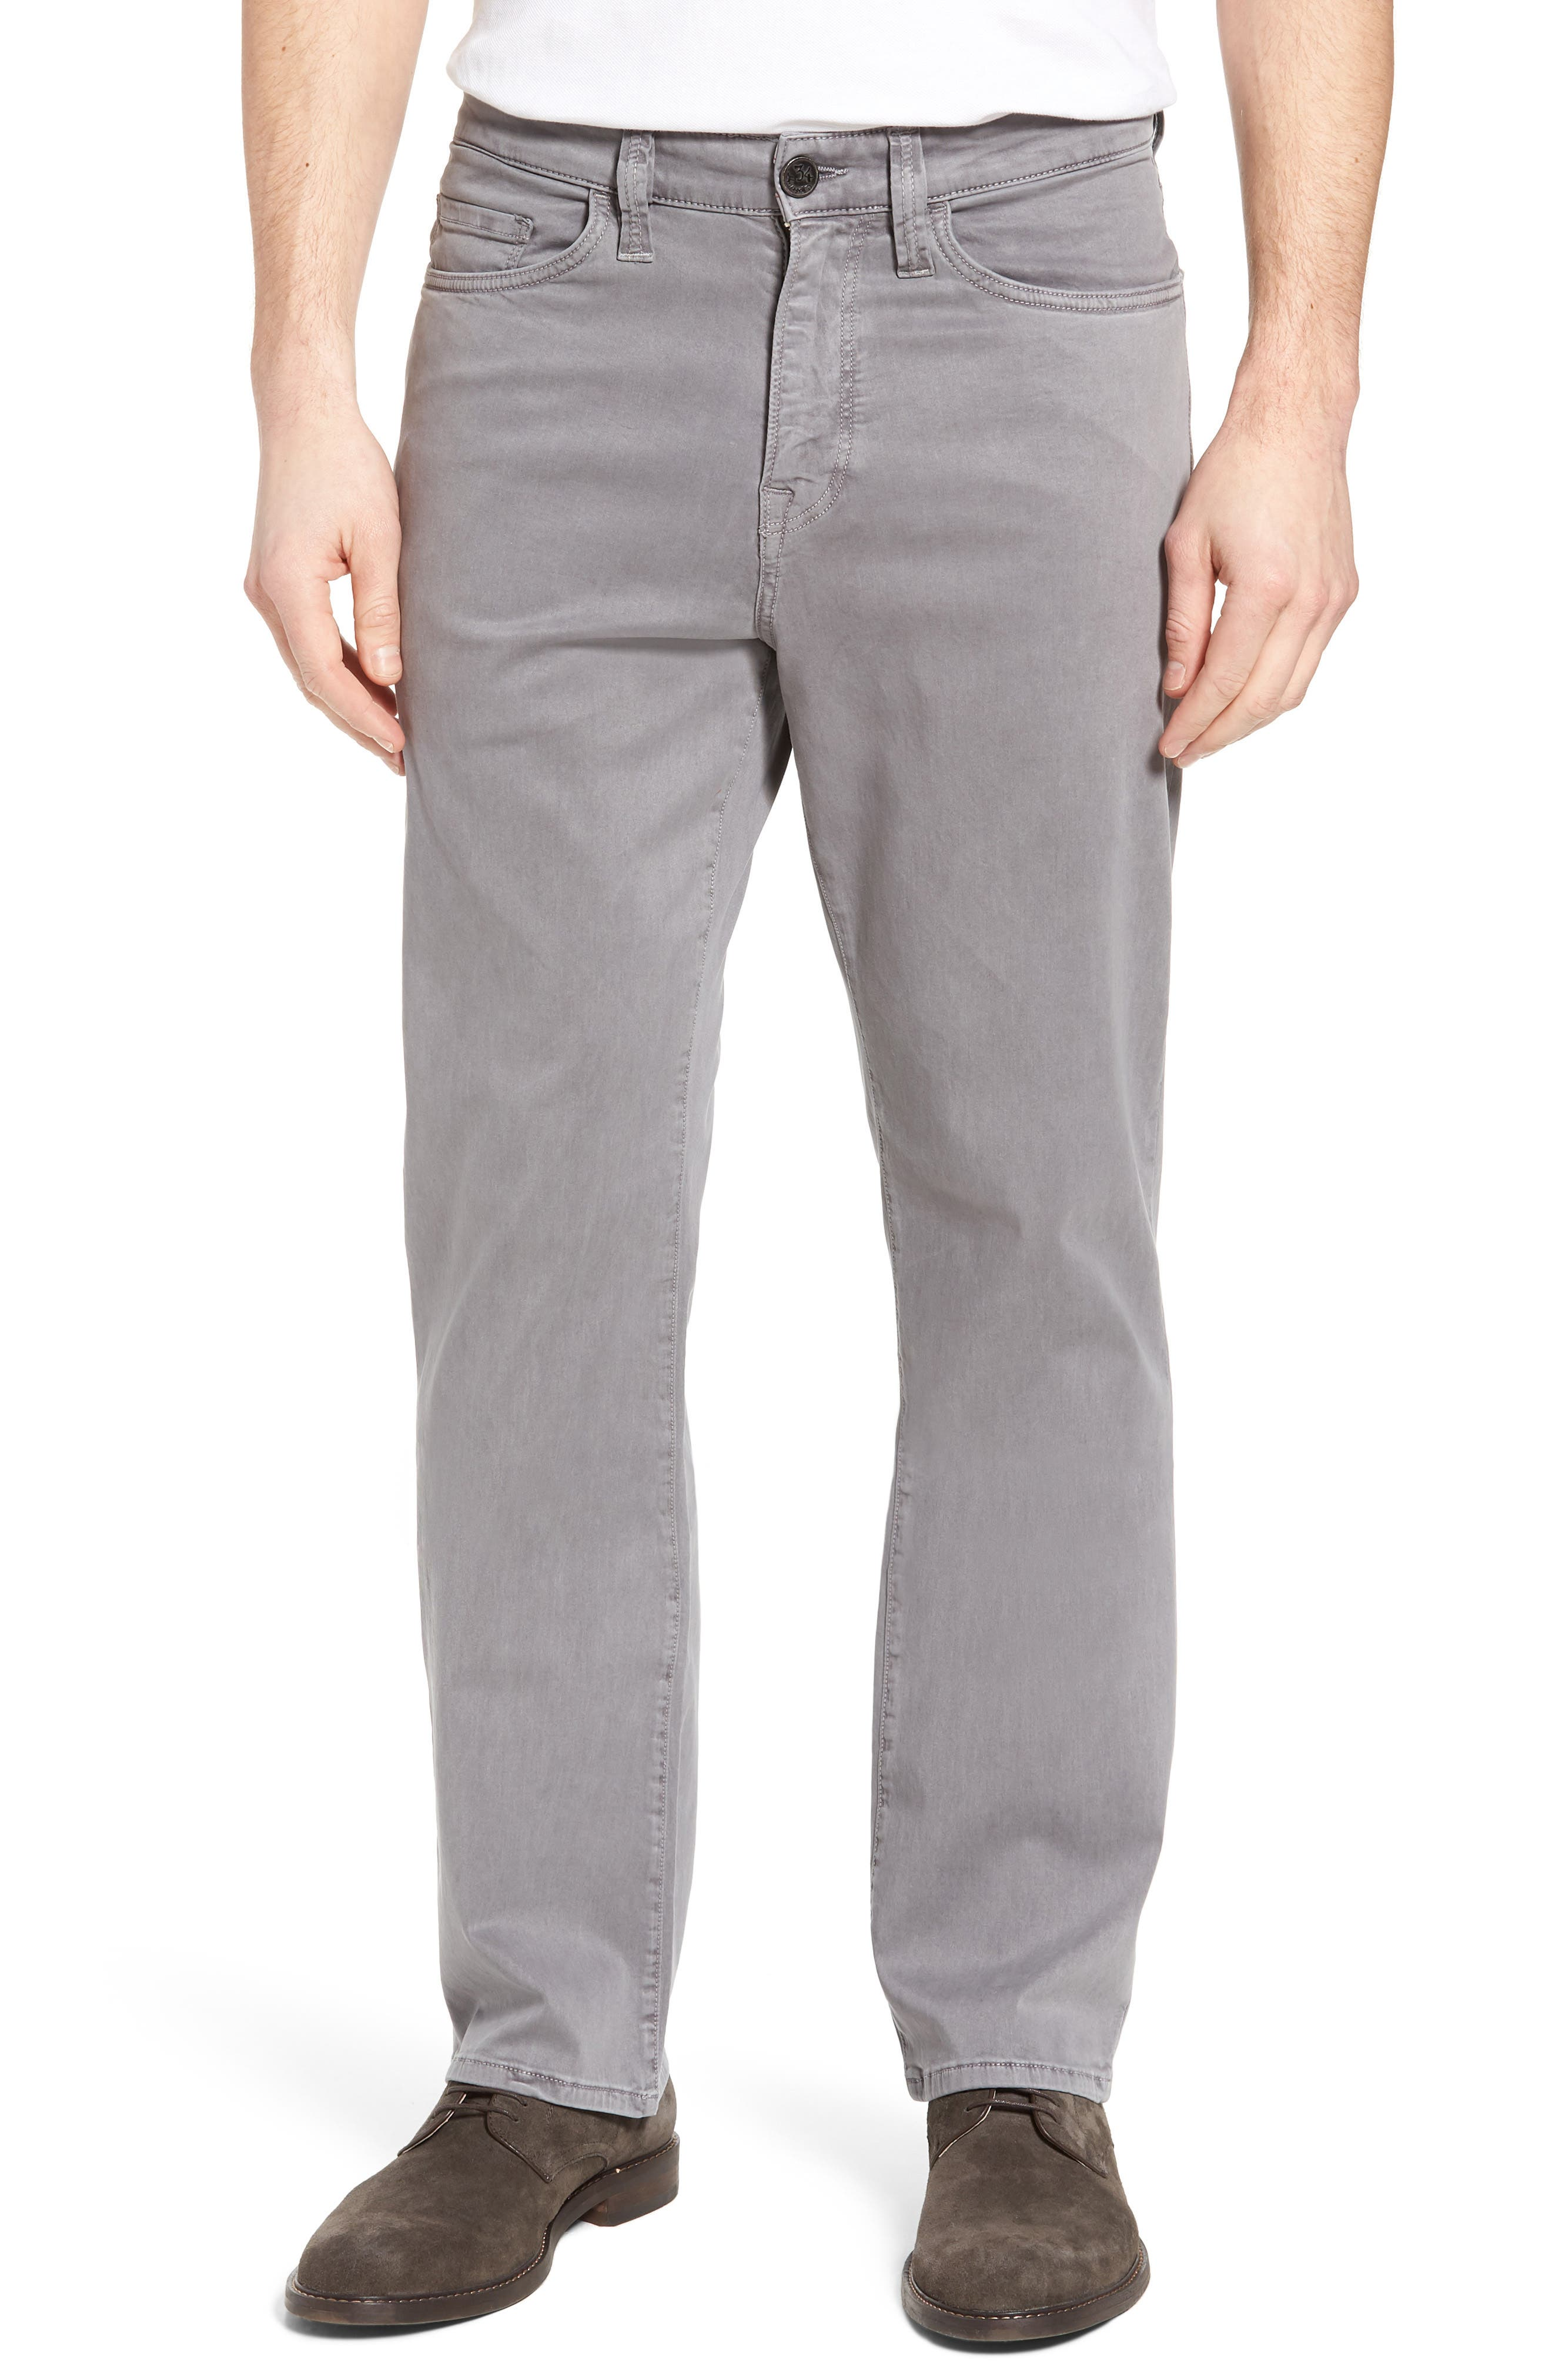 Charisma Relaxed Fit Twill Pants,                         Main,                         color, SHARK TWILL